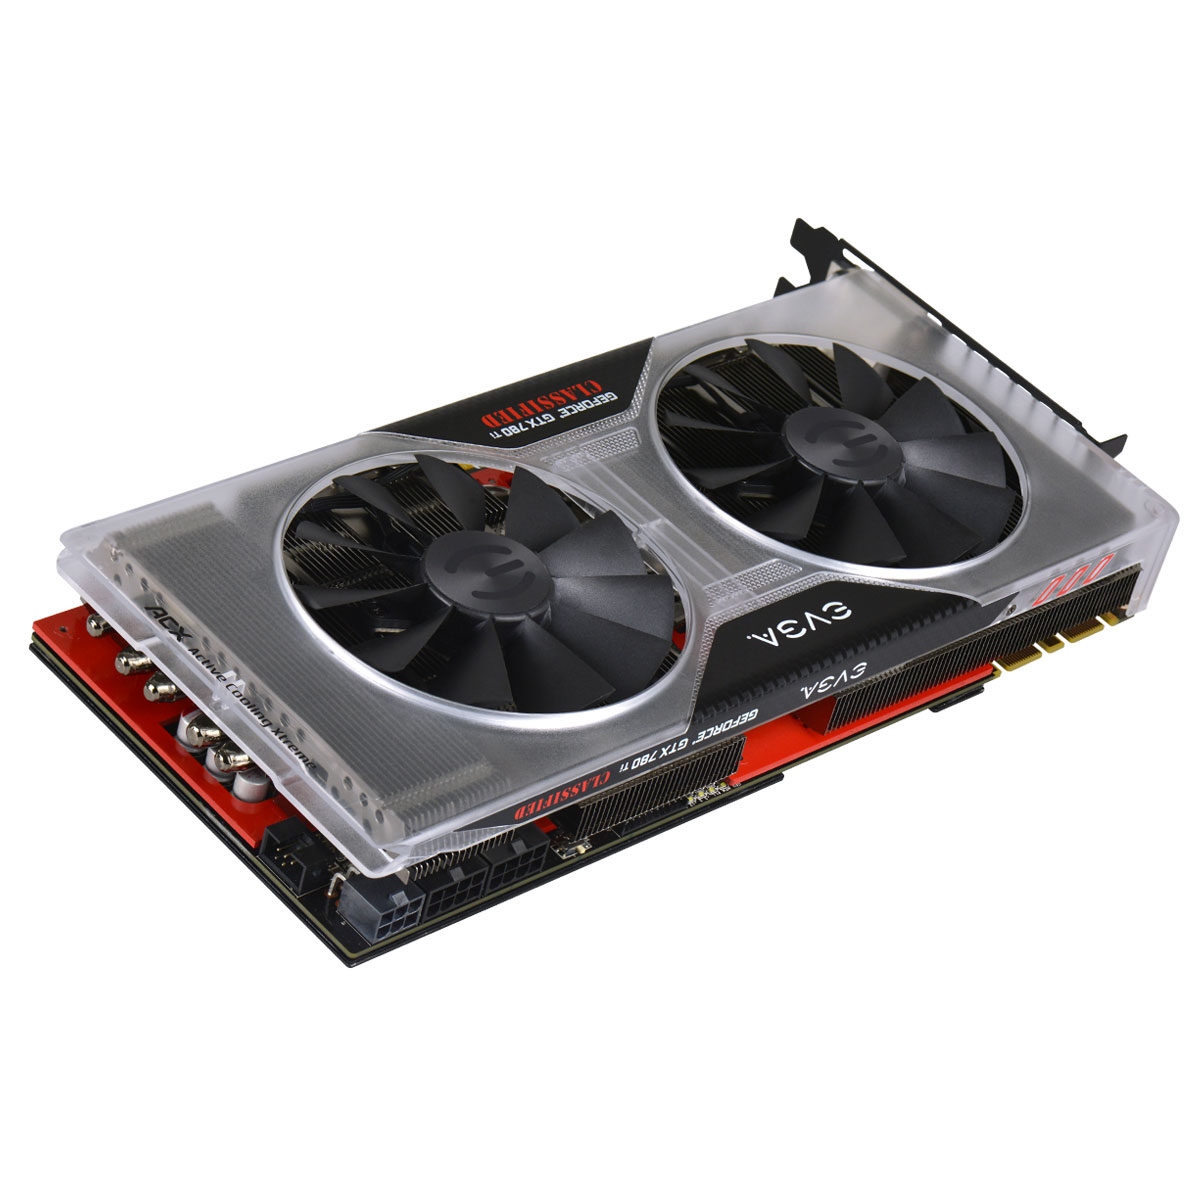 EVGA Unleashes The GeForce GTX 780 Ti Classified K|NGP|N ...